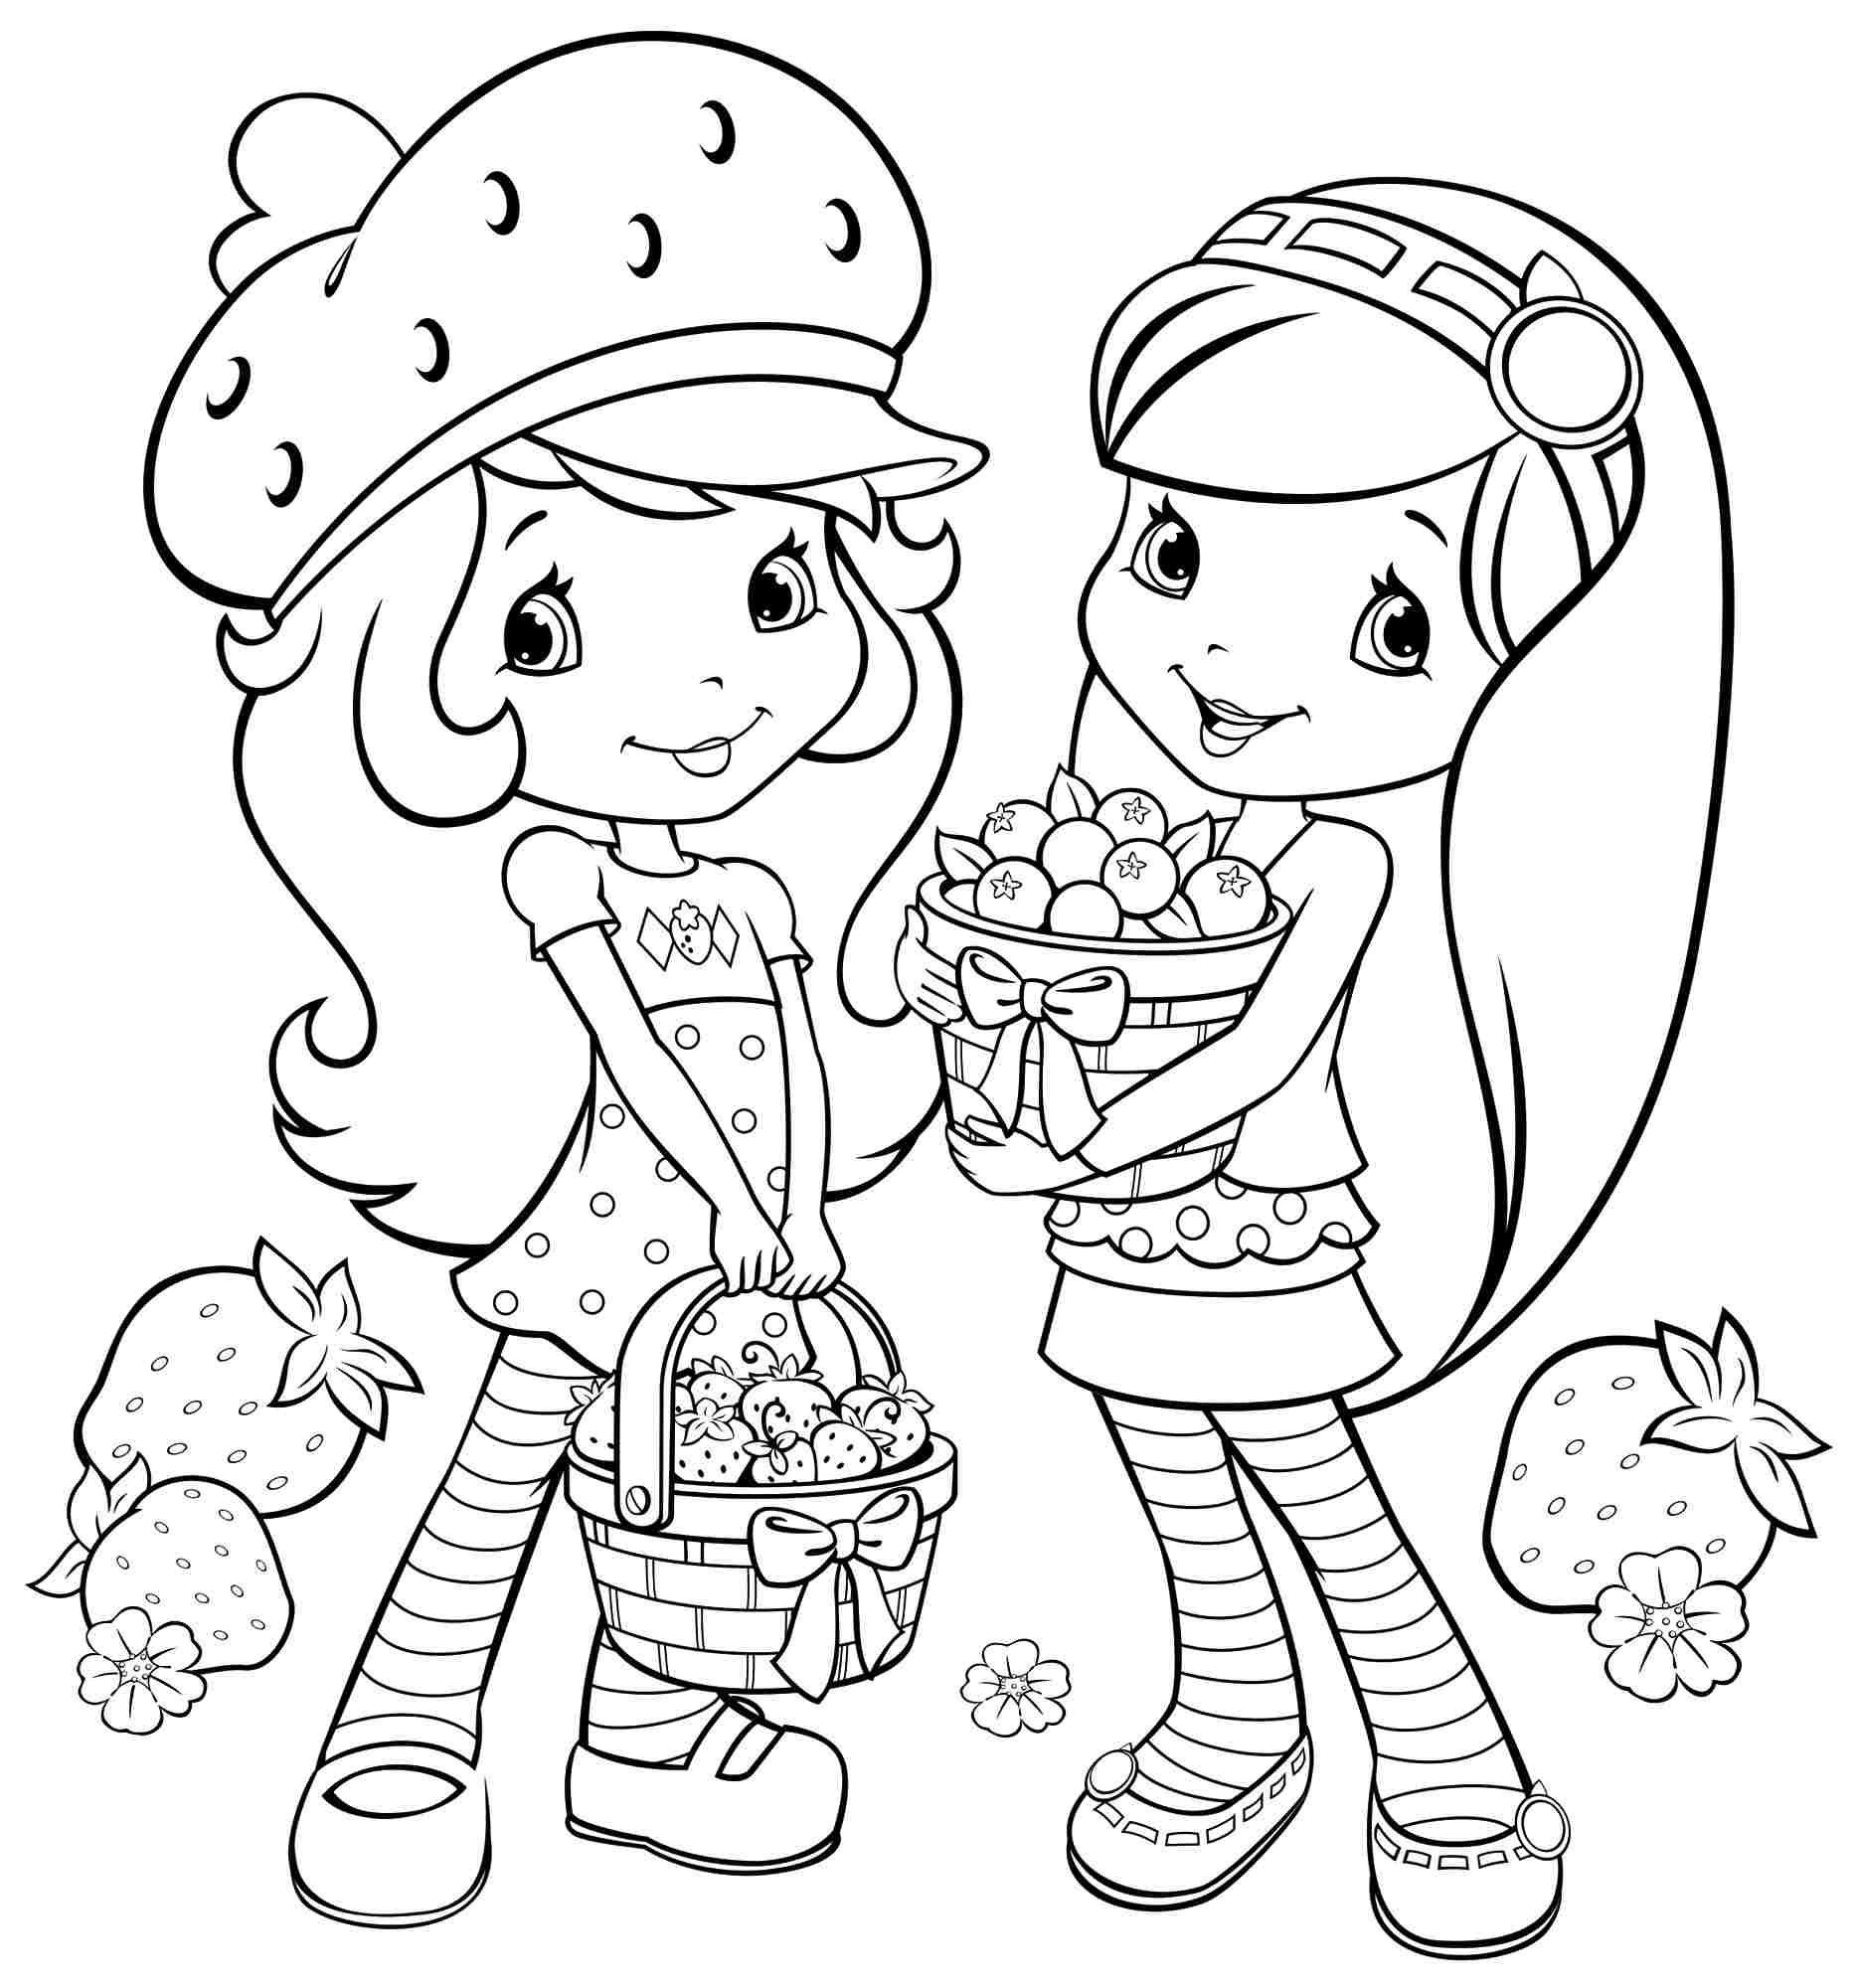 Coloring Sheets For Girls Strawberry Shortcake  Printable Coloring Pages Cartoon Strawberry Shortcake And